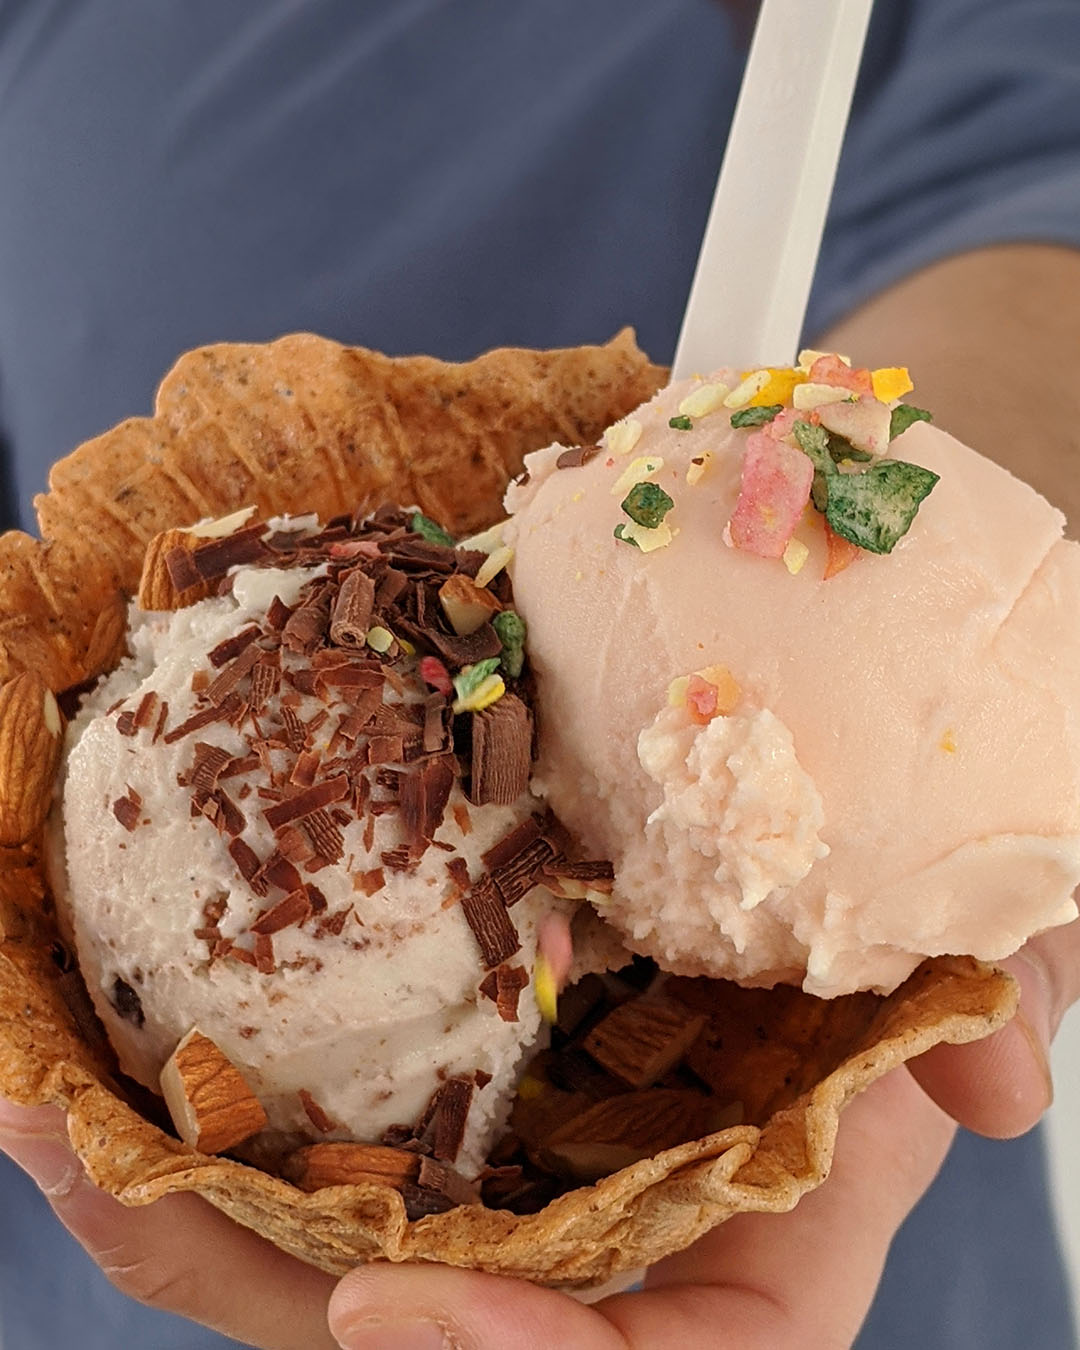 Good Habit ice cream held out in a waffle cone.